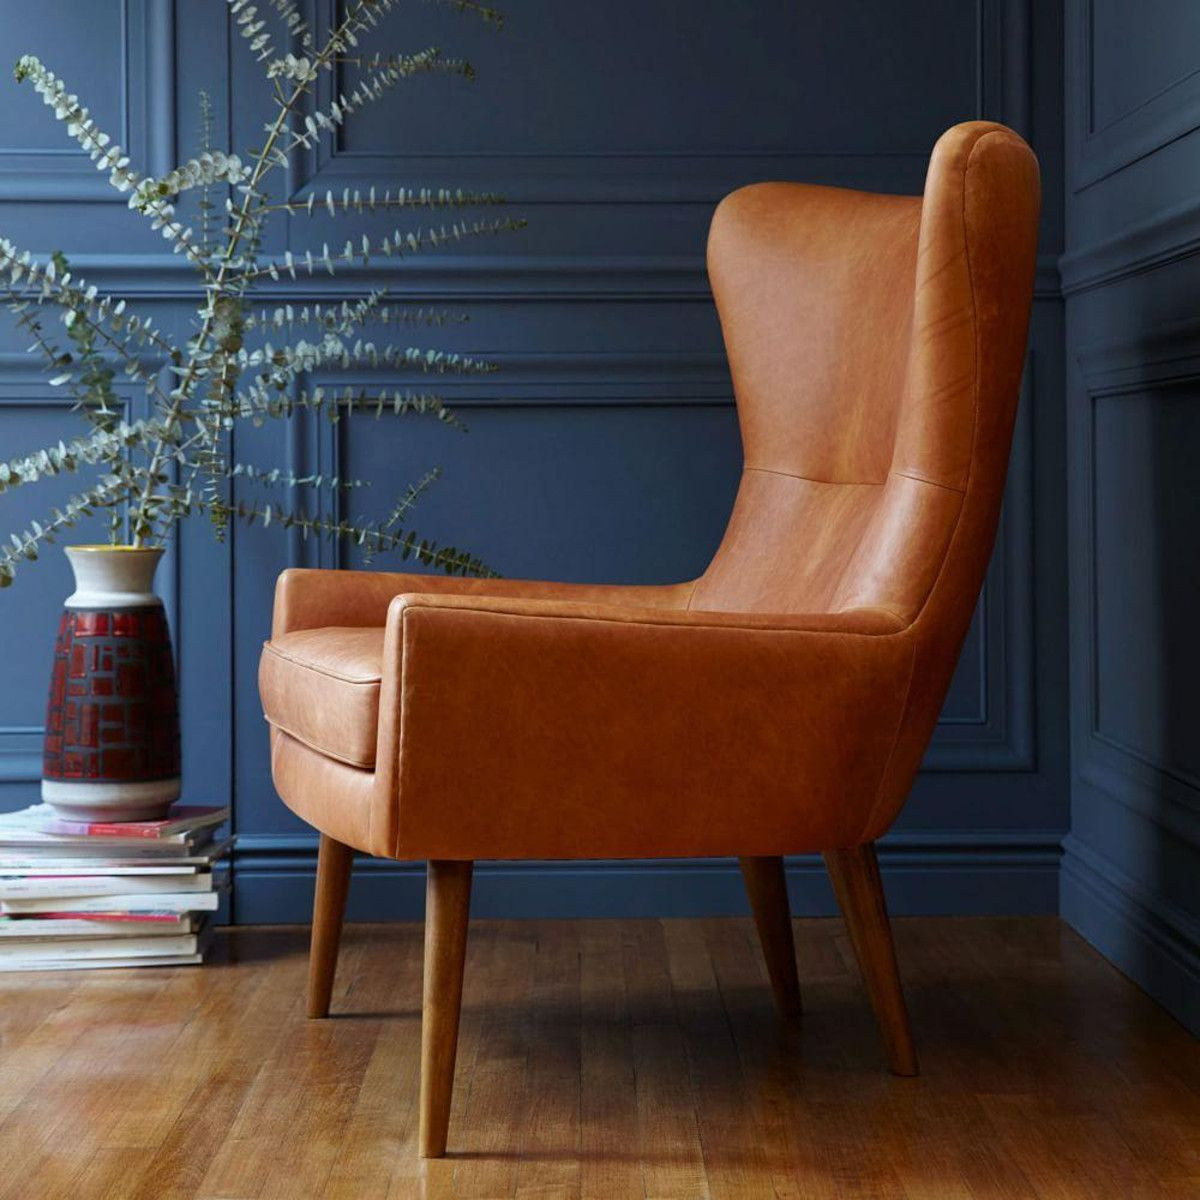 Our Erik Leather Chair Is A Scandinavian Inspired Take On The